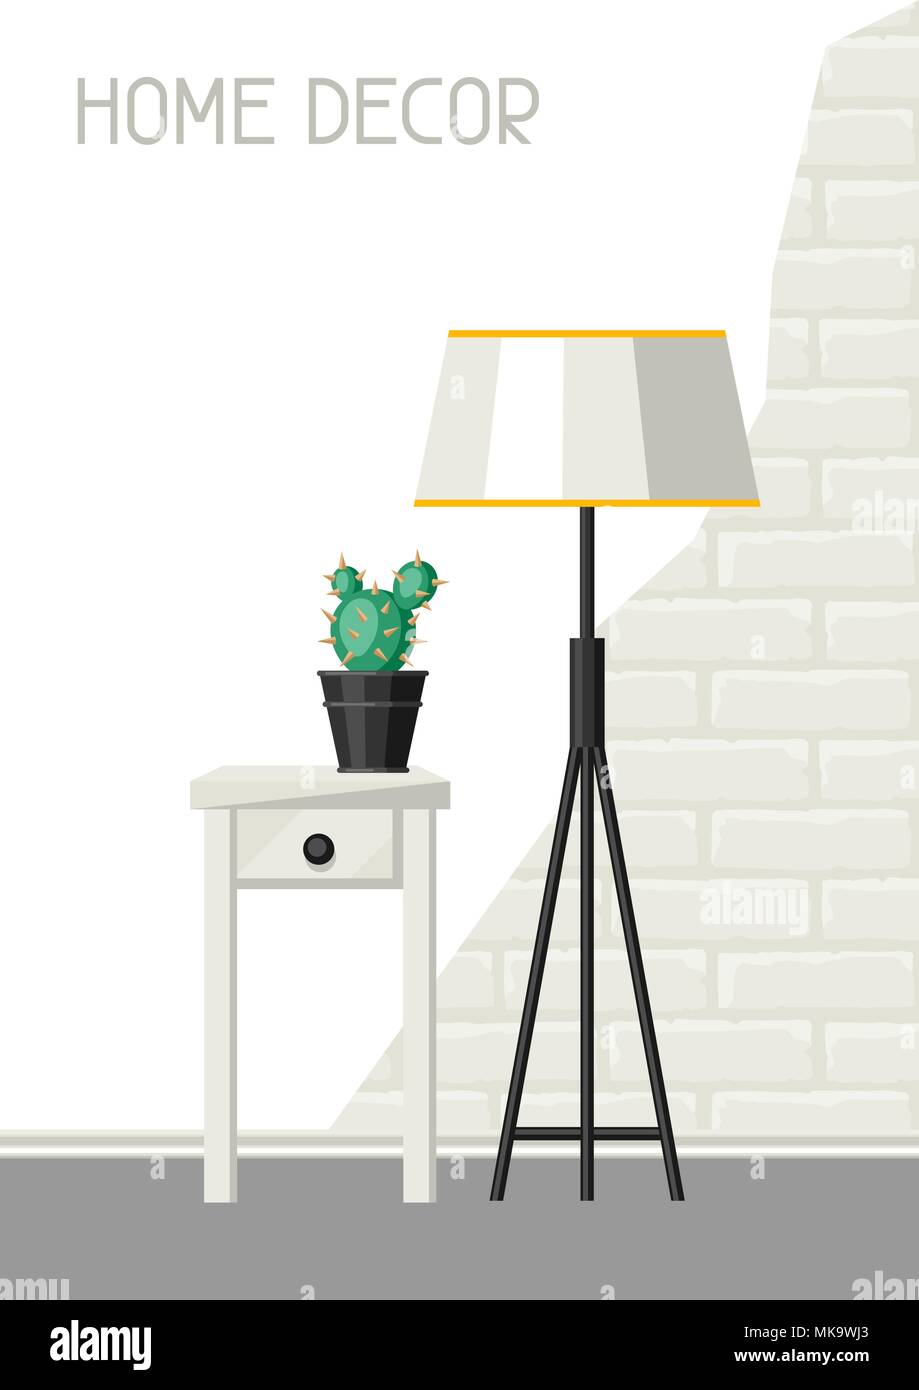 Interior Home Decor Lamp And Table With Cactus Stock Vector Art